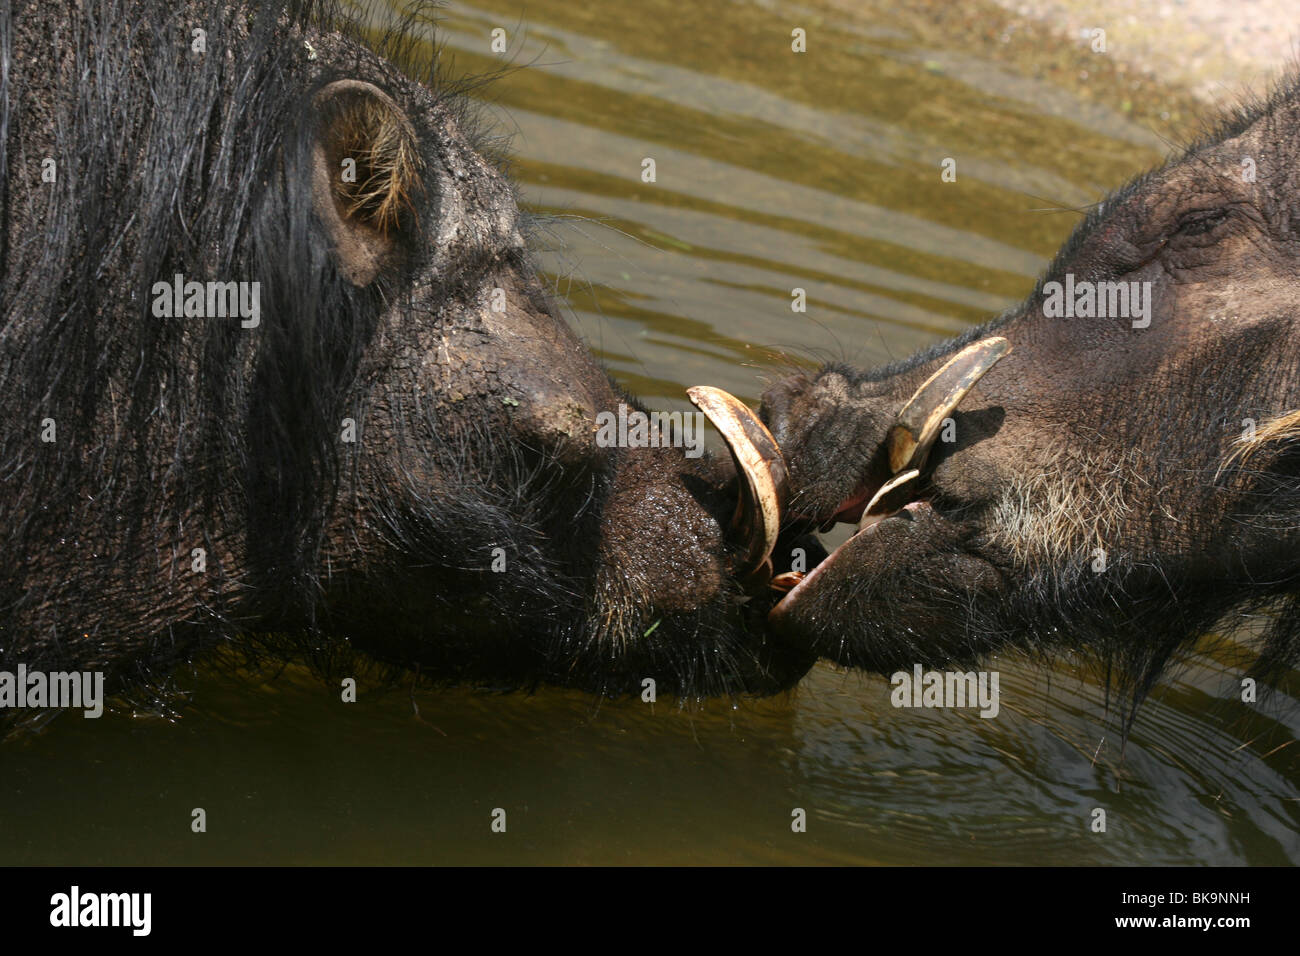 Two Giant Forest Hogs 'kissing' in a pond, Uganda - Stock Image